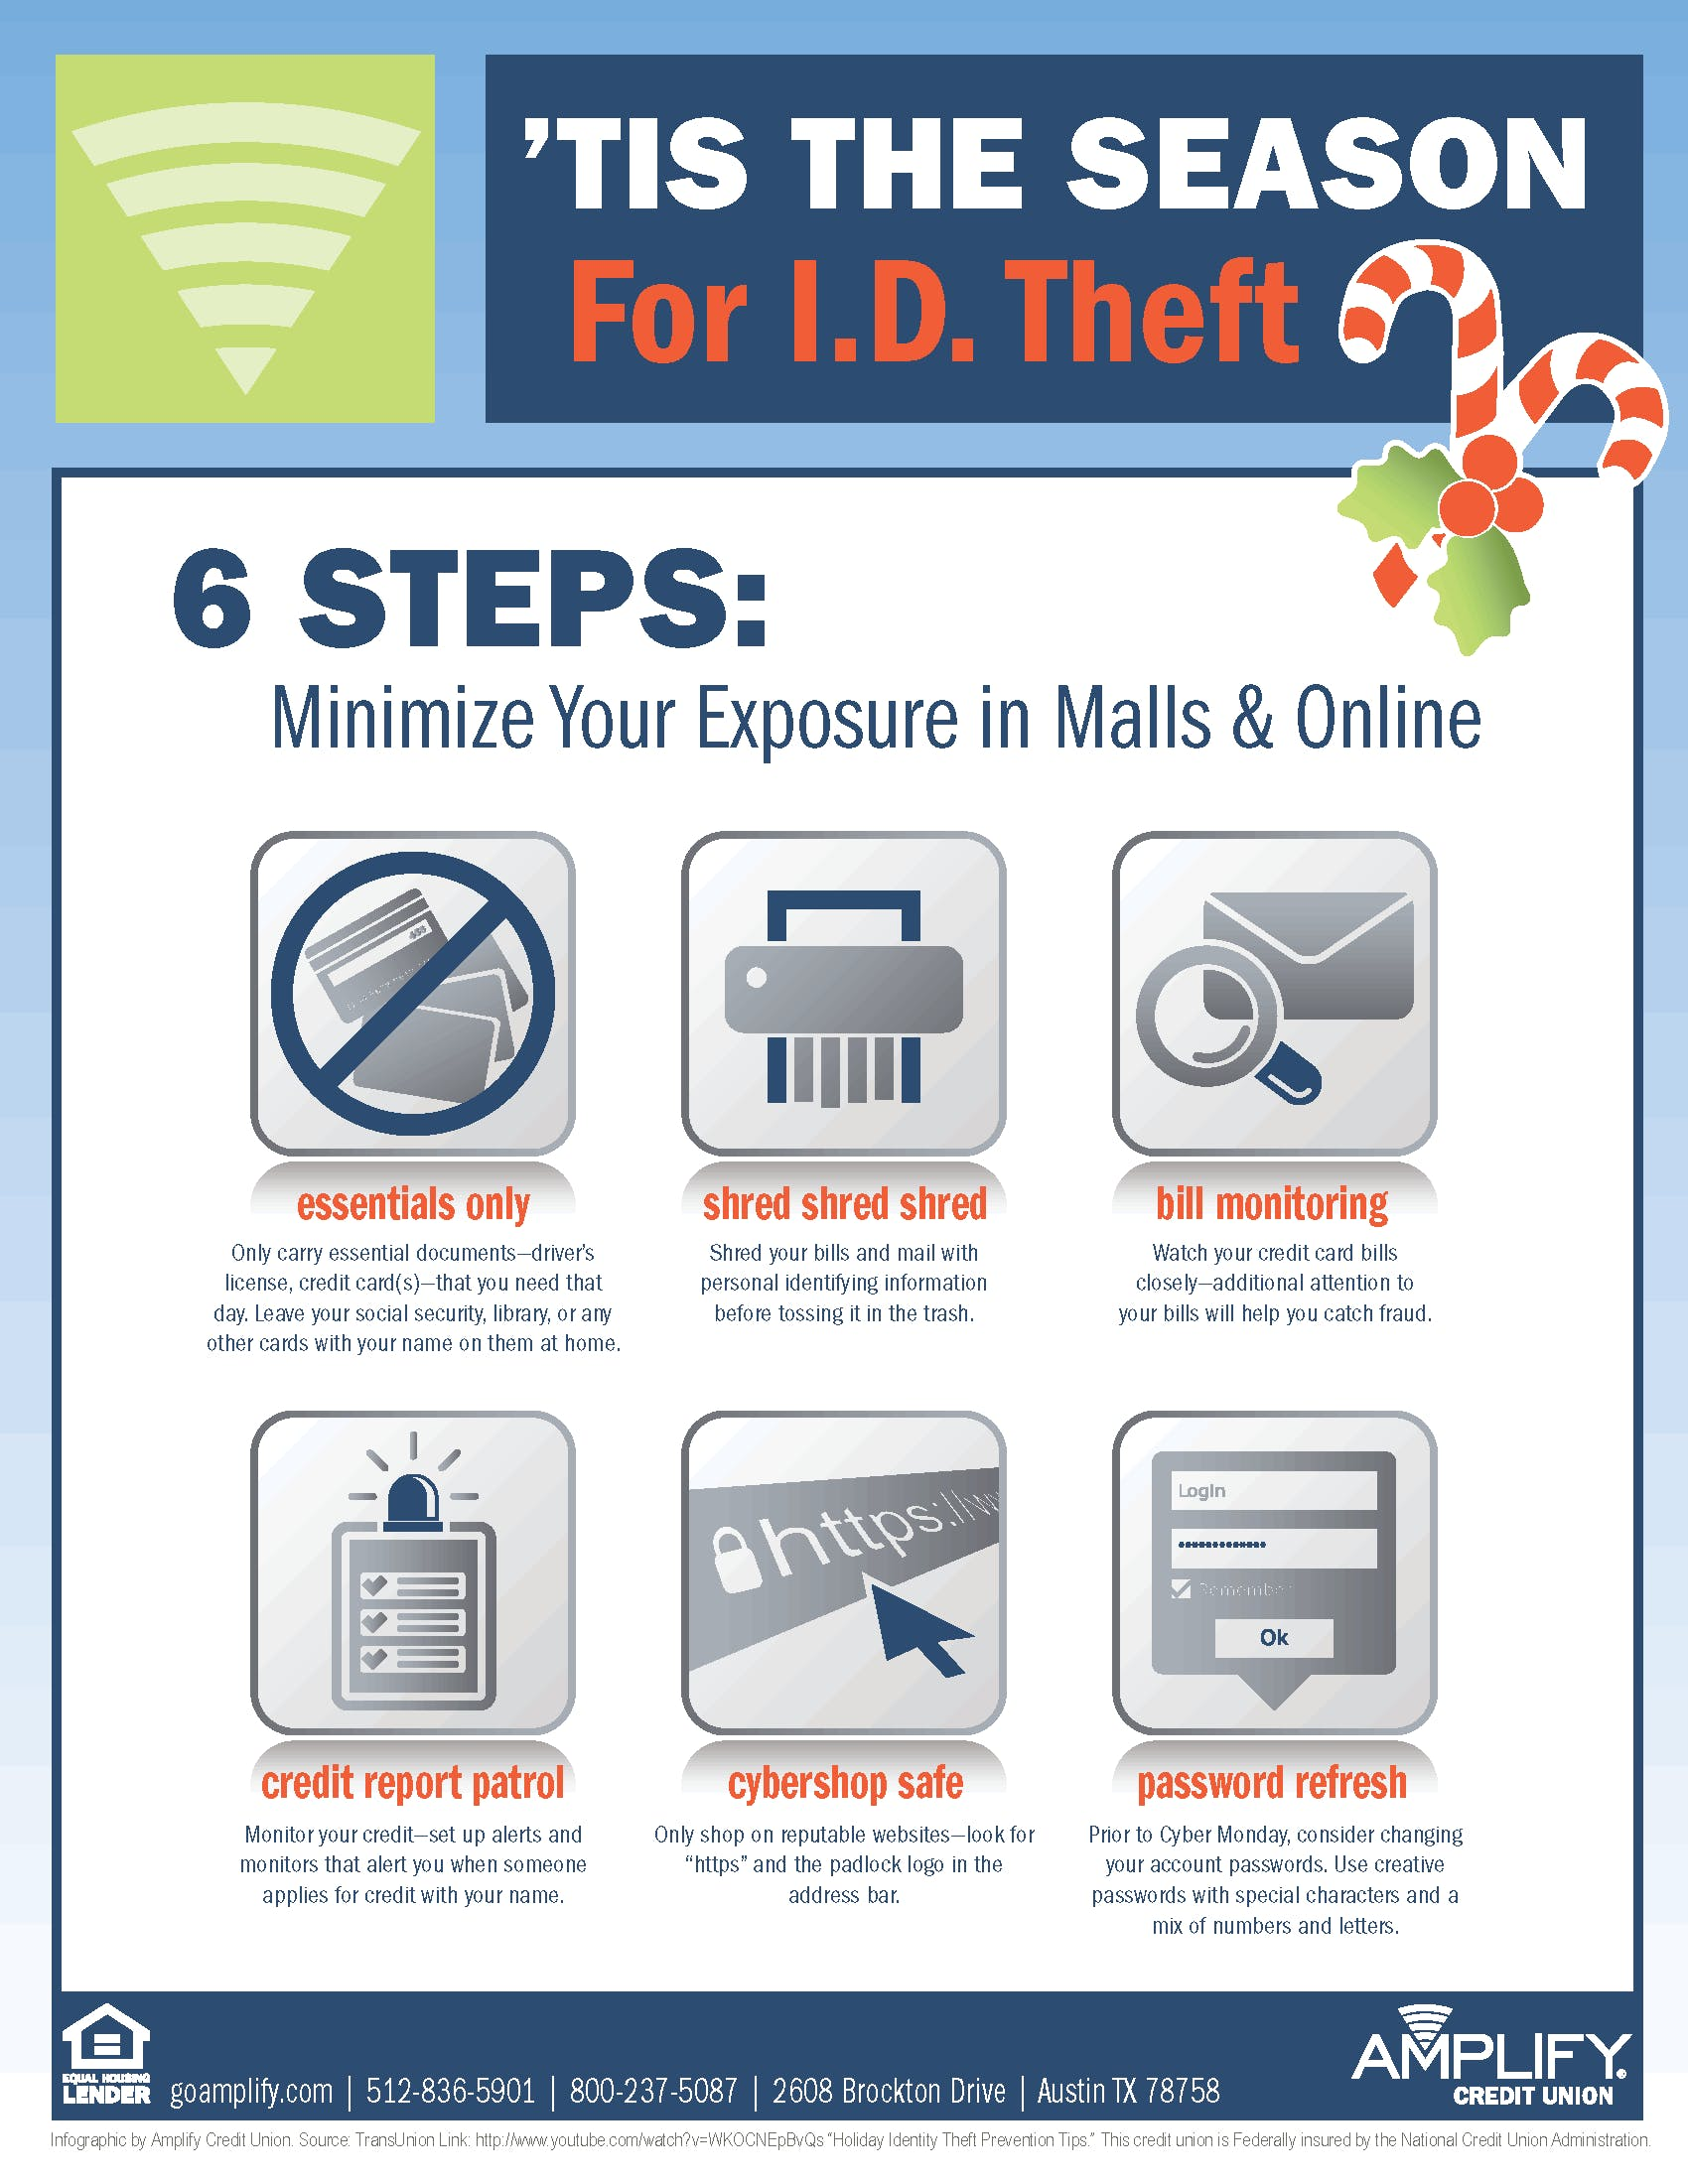 Information and tips about minimizing your exposure and risk of identity theft.